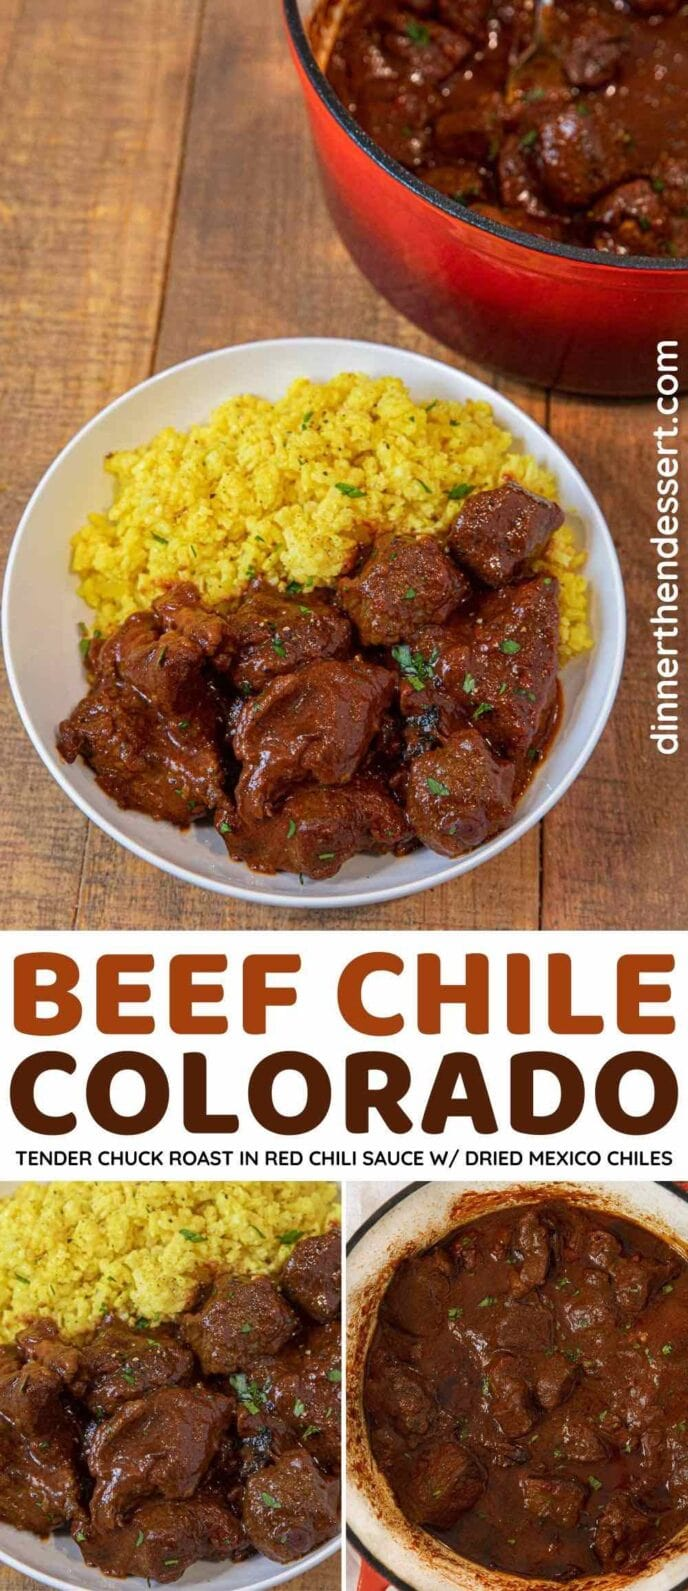 Beef Chile Colorado collage